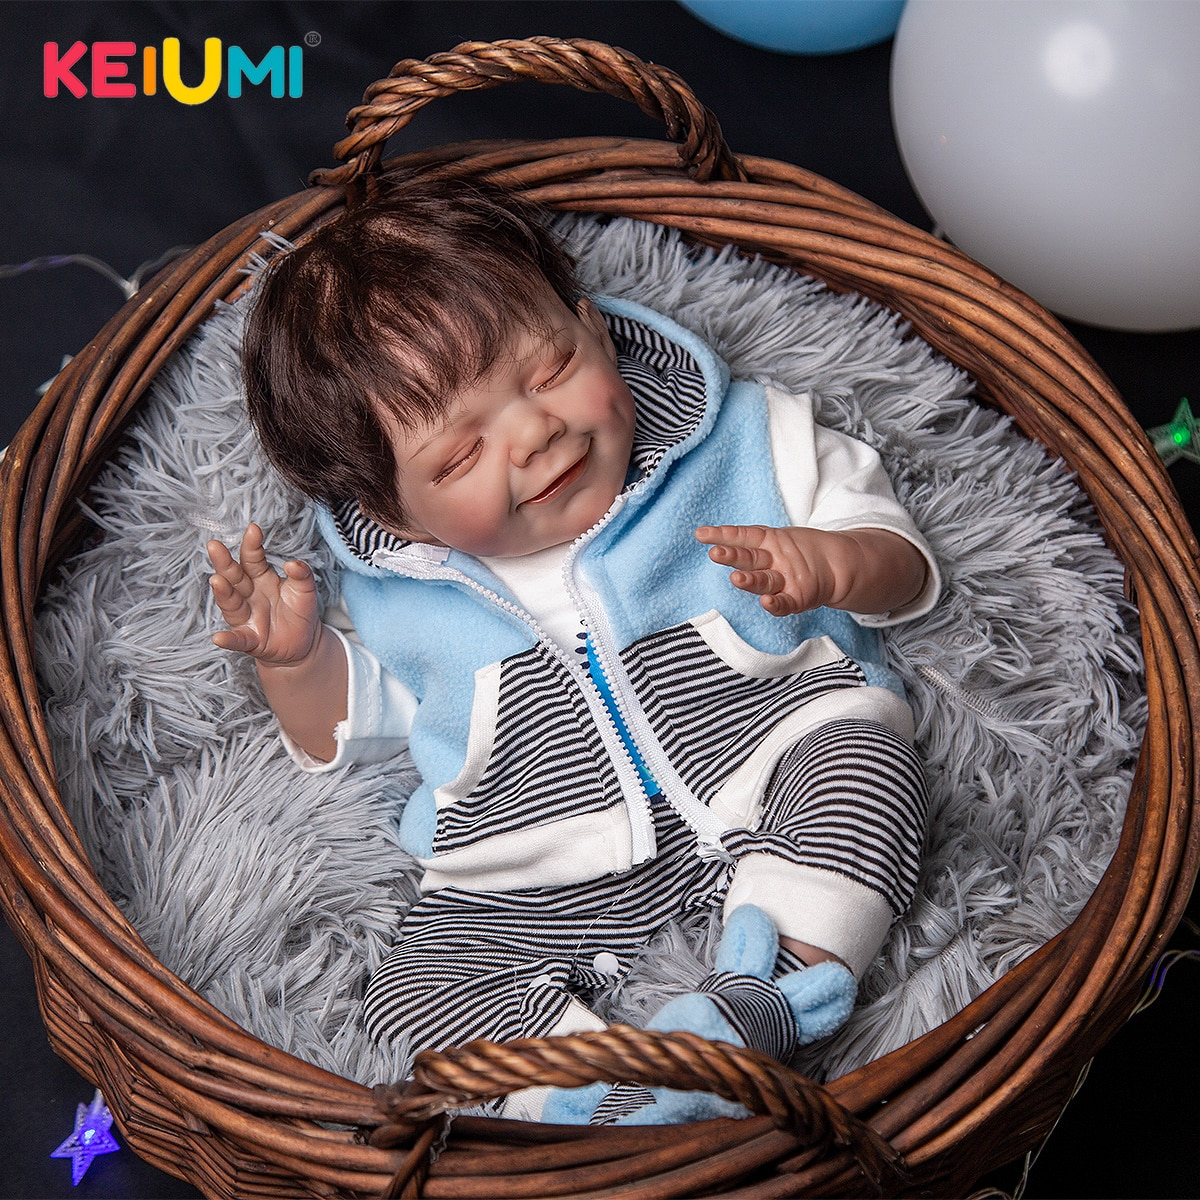 Super Soft 50 cm Memory Doll Reborn Baby Dolls Rooted Fiber Hair Silicone Cloth Body Reborn Bebe Toy